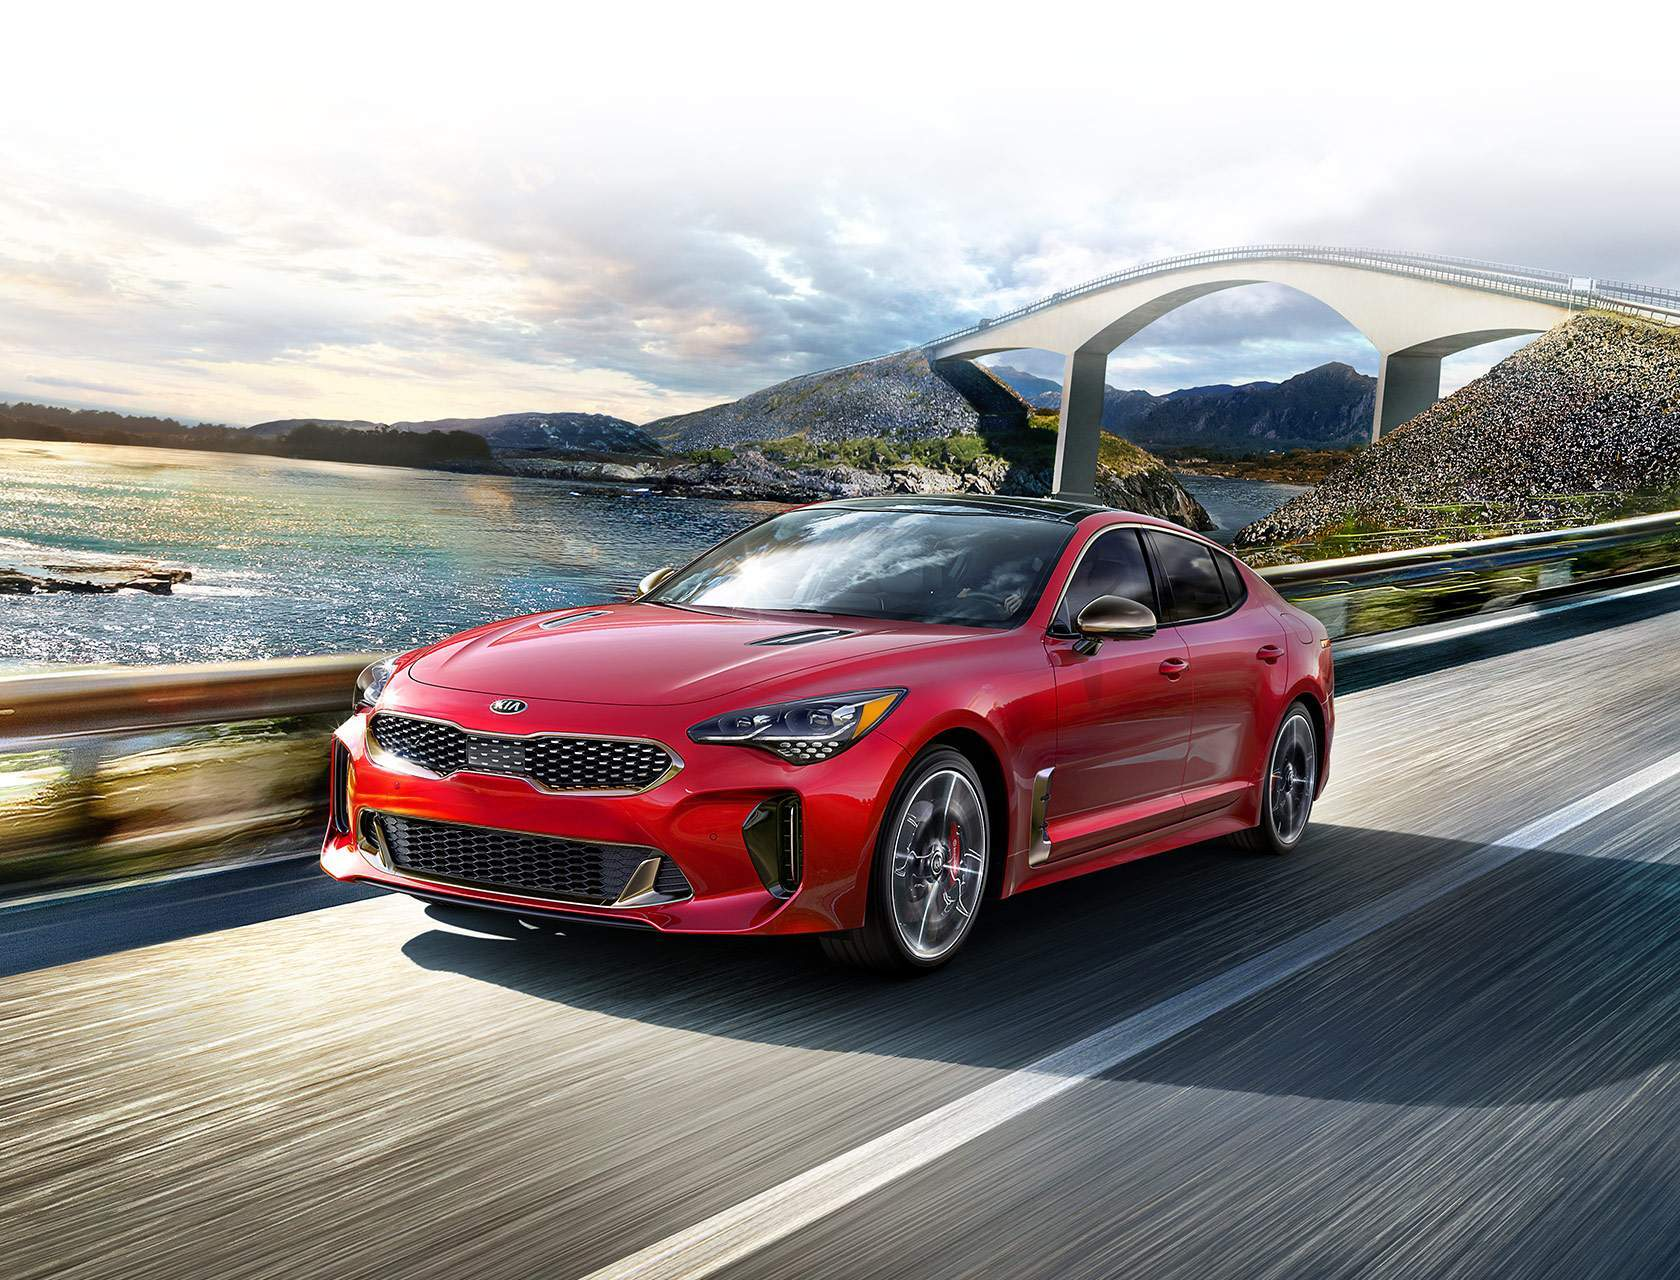 2018 Kia Stinger in Concord, CA